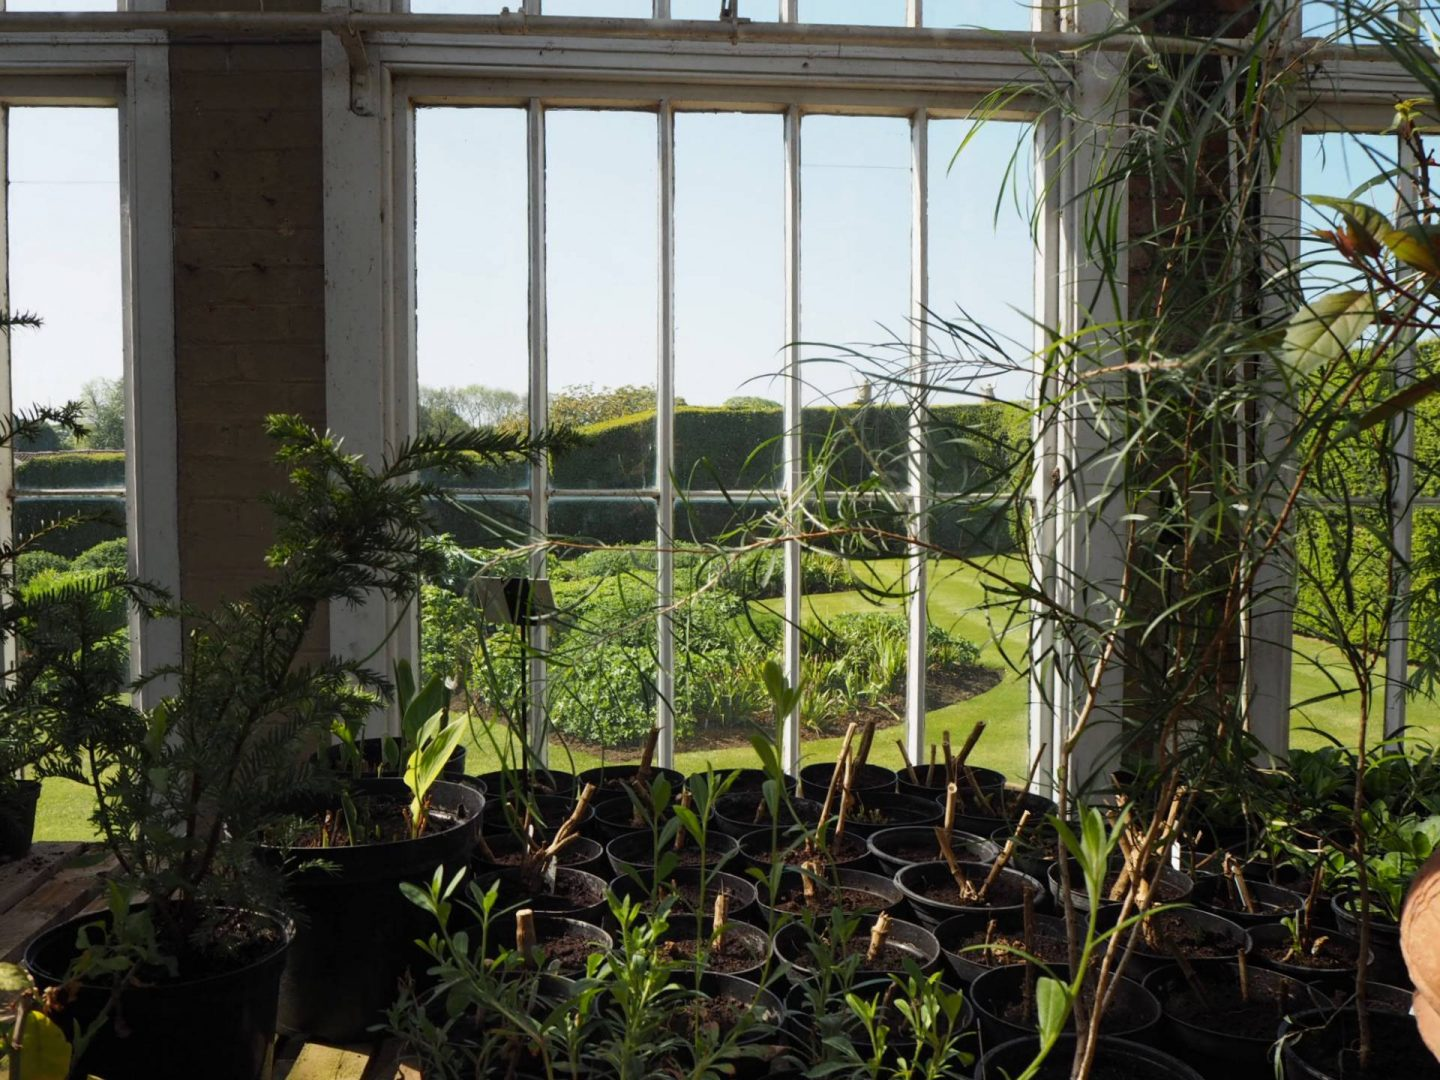 View out from greenhouse at Castle Ashby